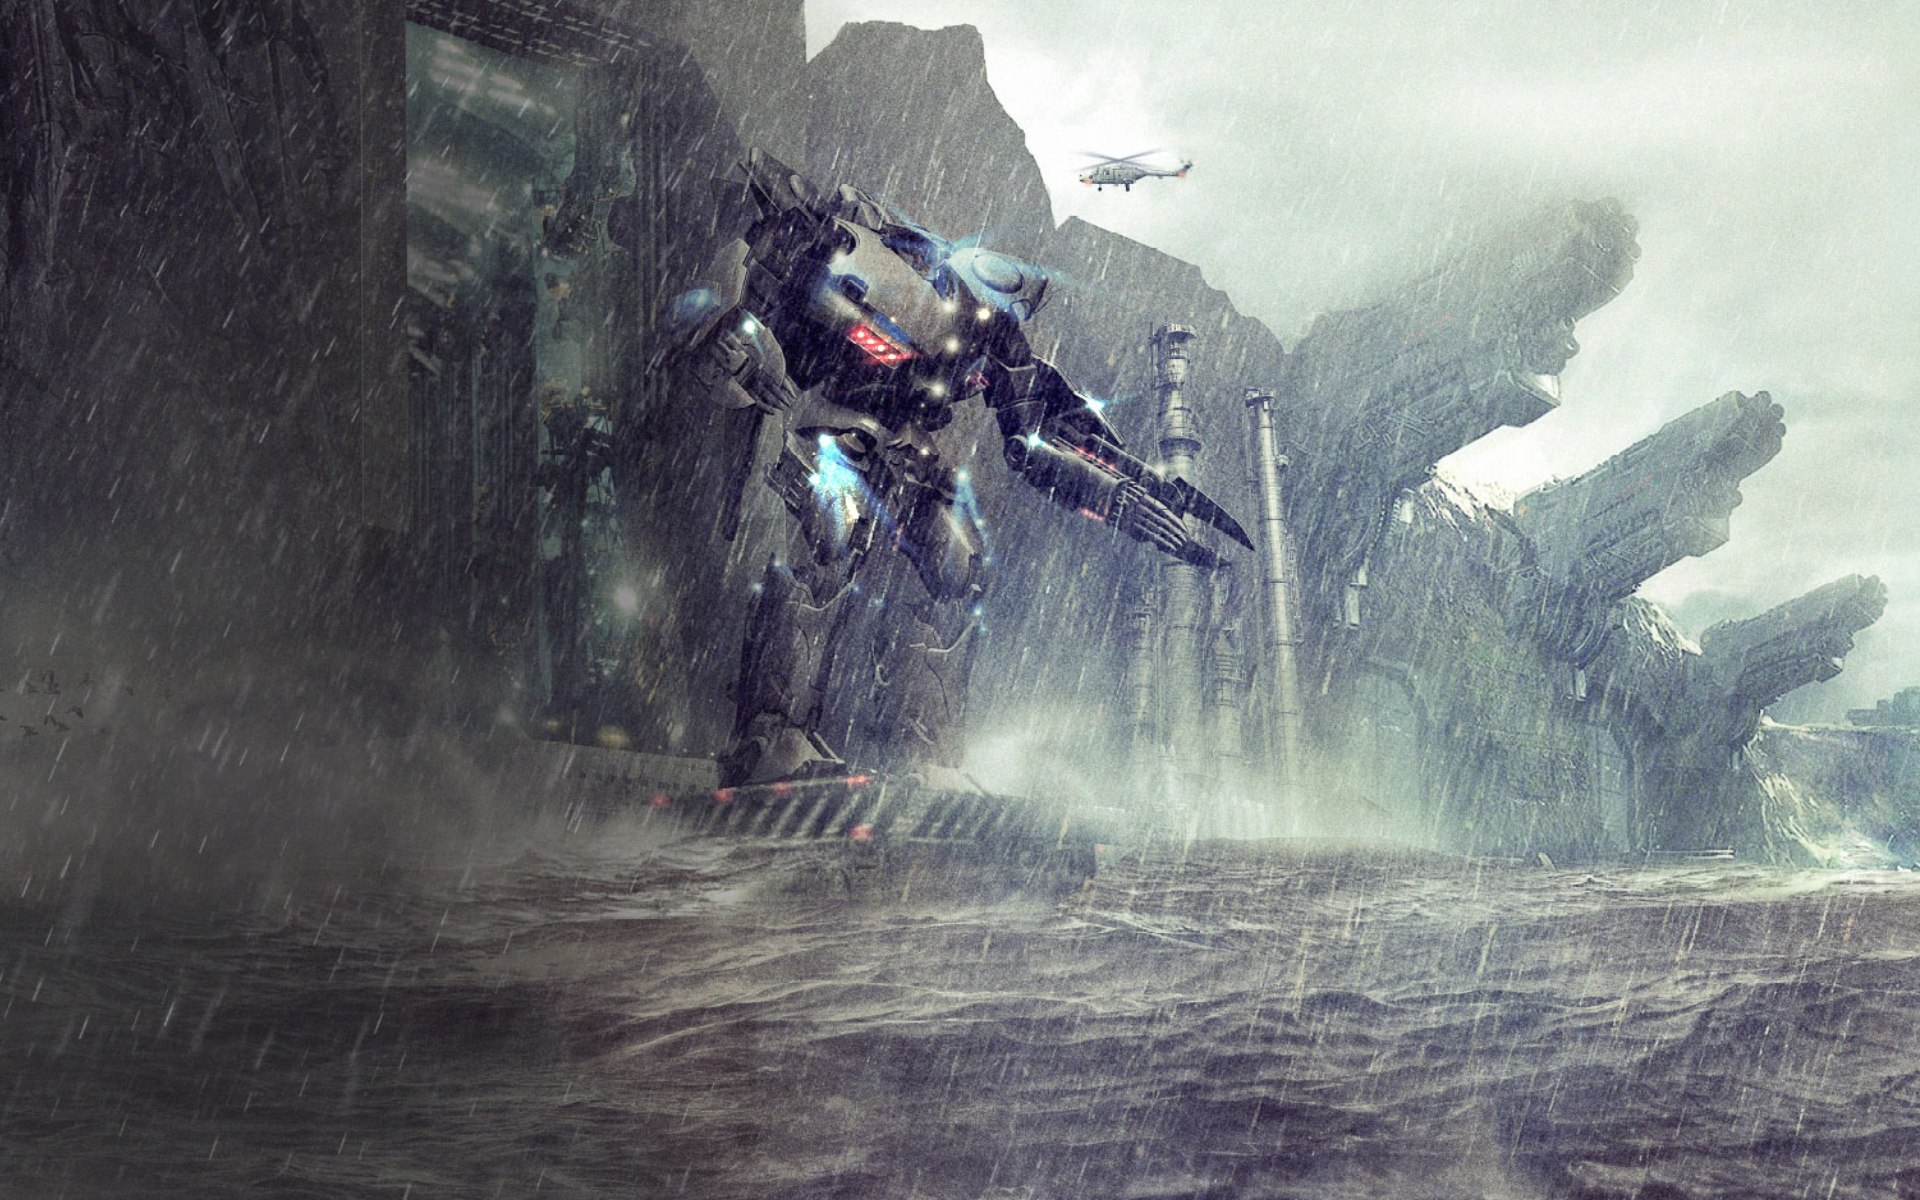 Pacific rim movie 2013 1920 x 1200 download close